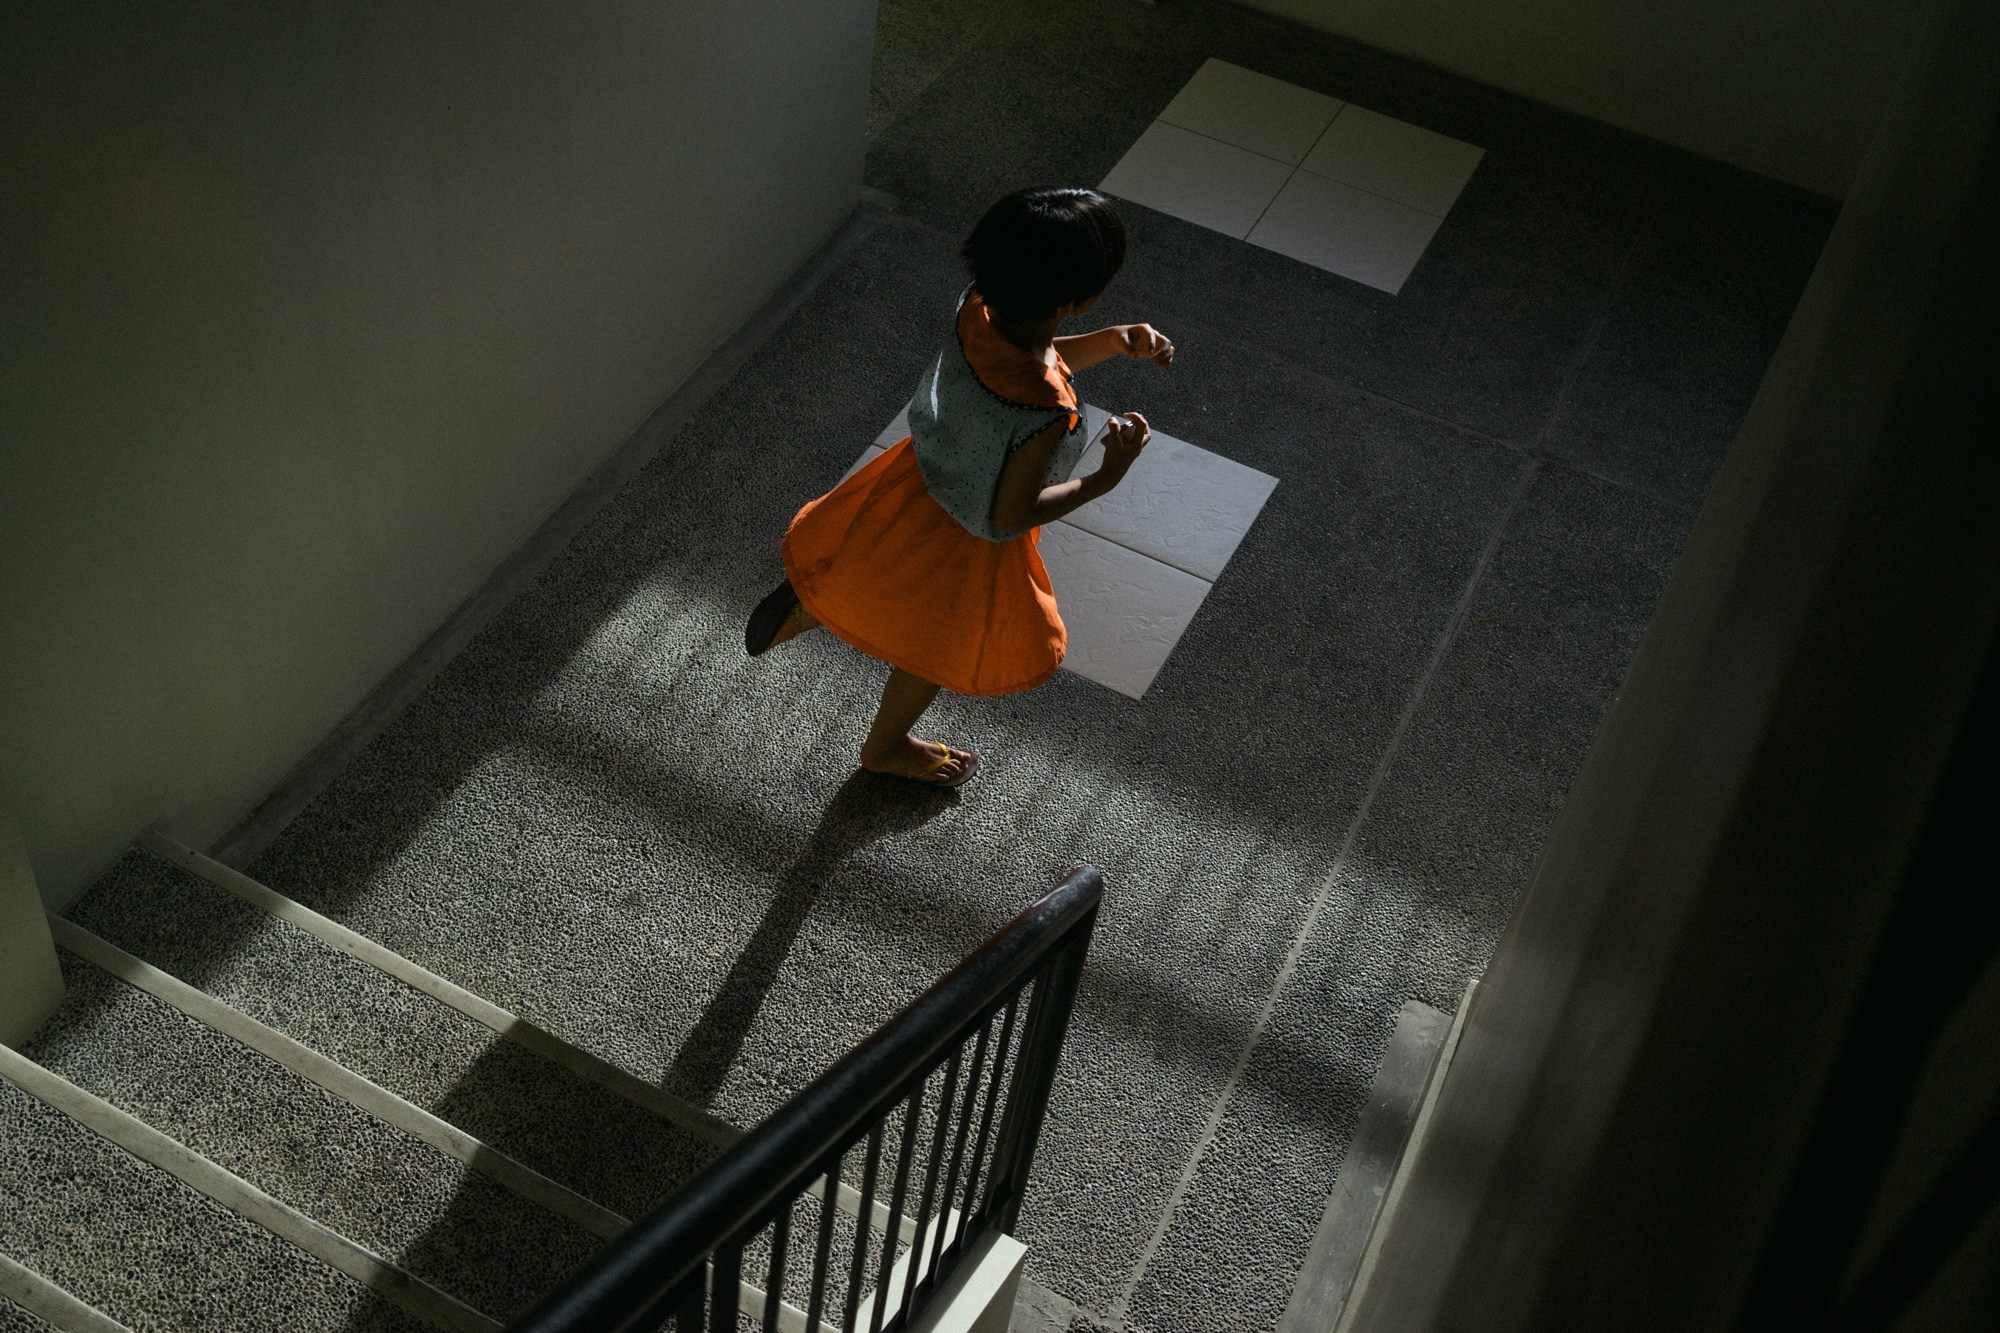 A 10-year-old child runs in a halfway house for sex trafficking victims outside of Manila. (Photo by Hannah Reyes Morales/GroundTruth)